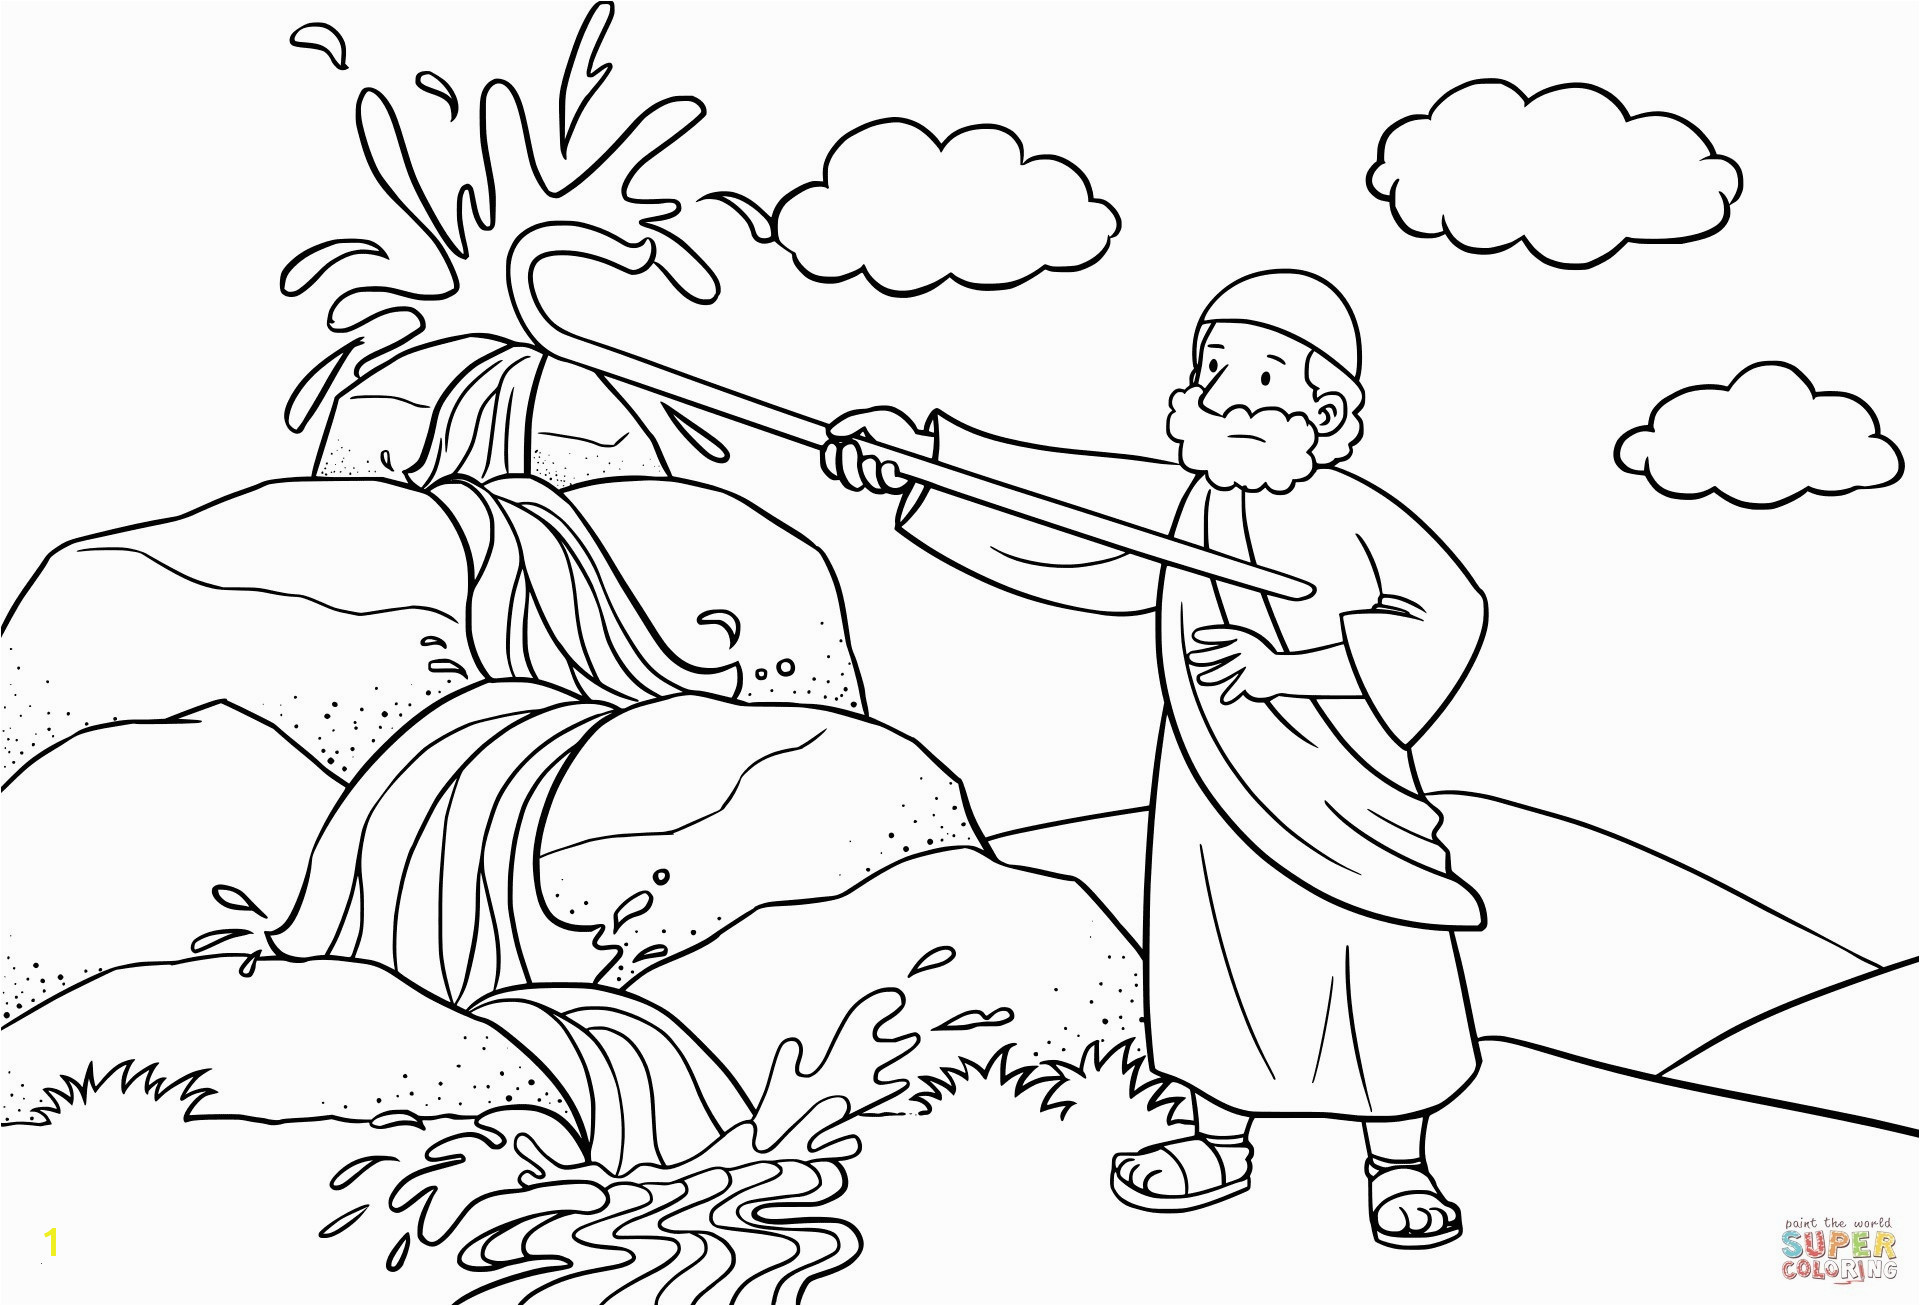 Moses Burning Bush Coloring Page Inspirational Moses Burning Bush Coloring Page Beautiful God Speaks to Moses